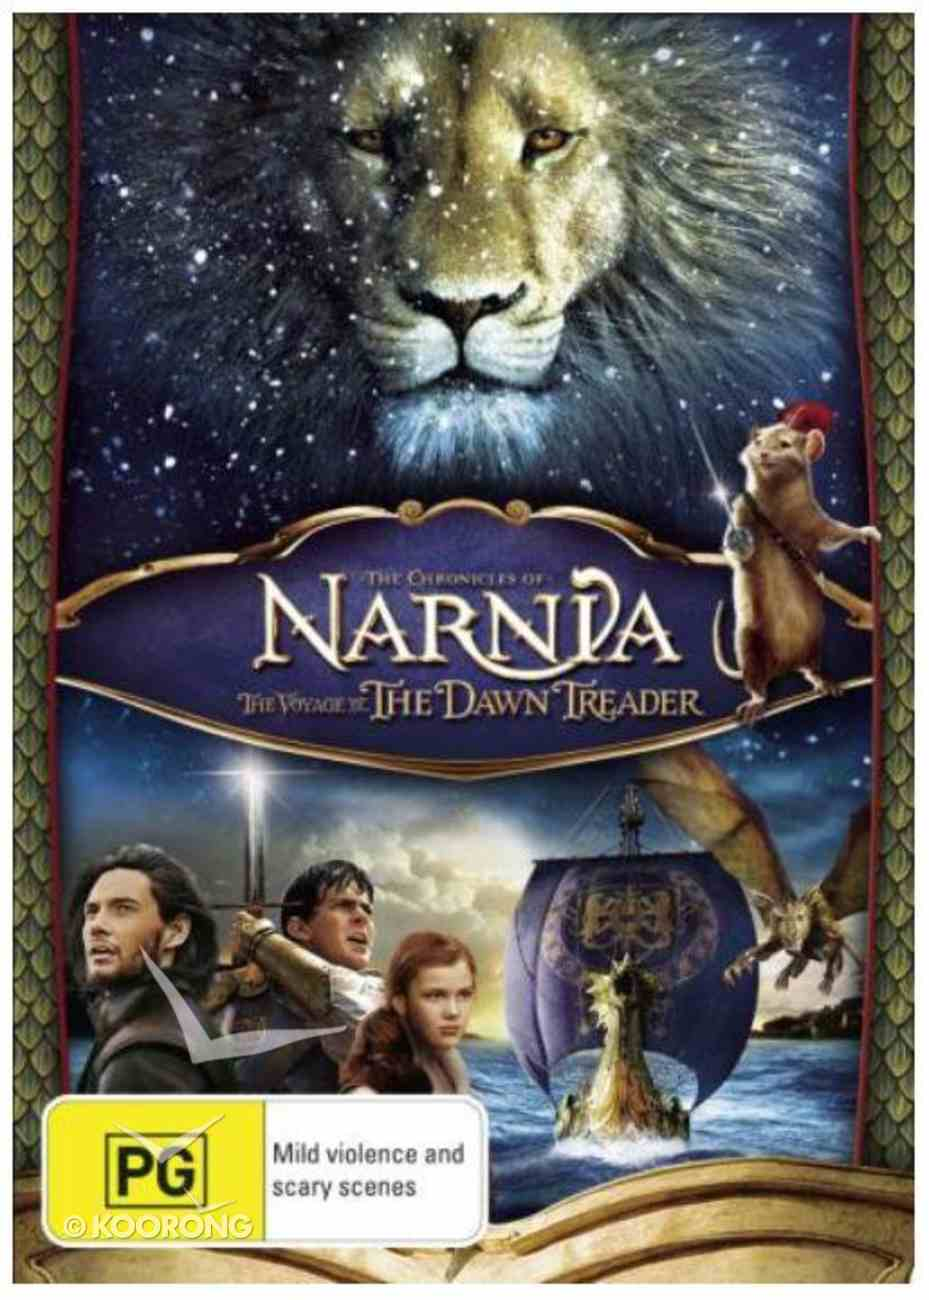 Narnia: The Voyage of the Dawn Treader DVD